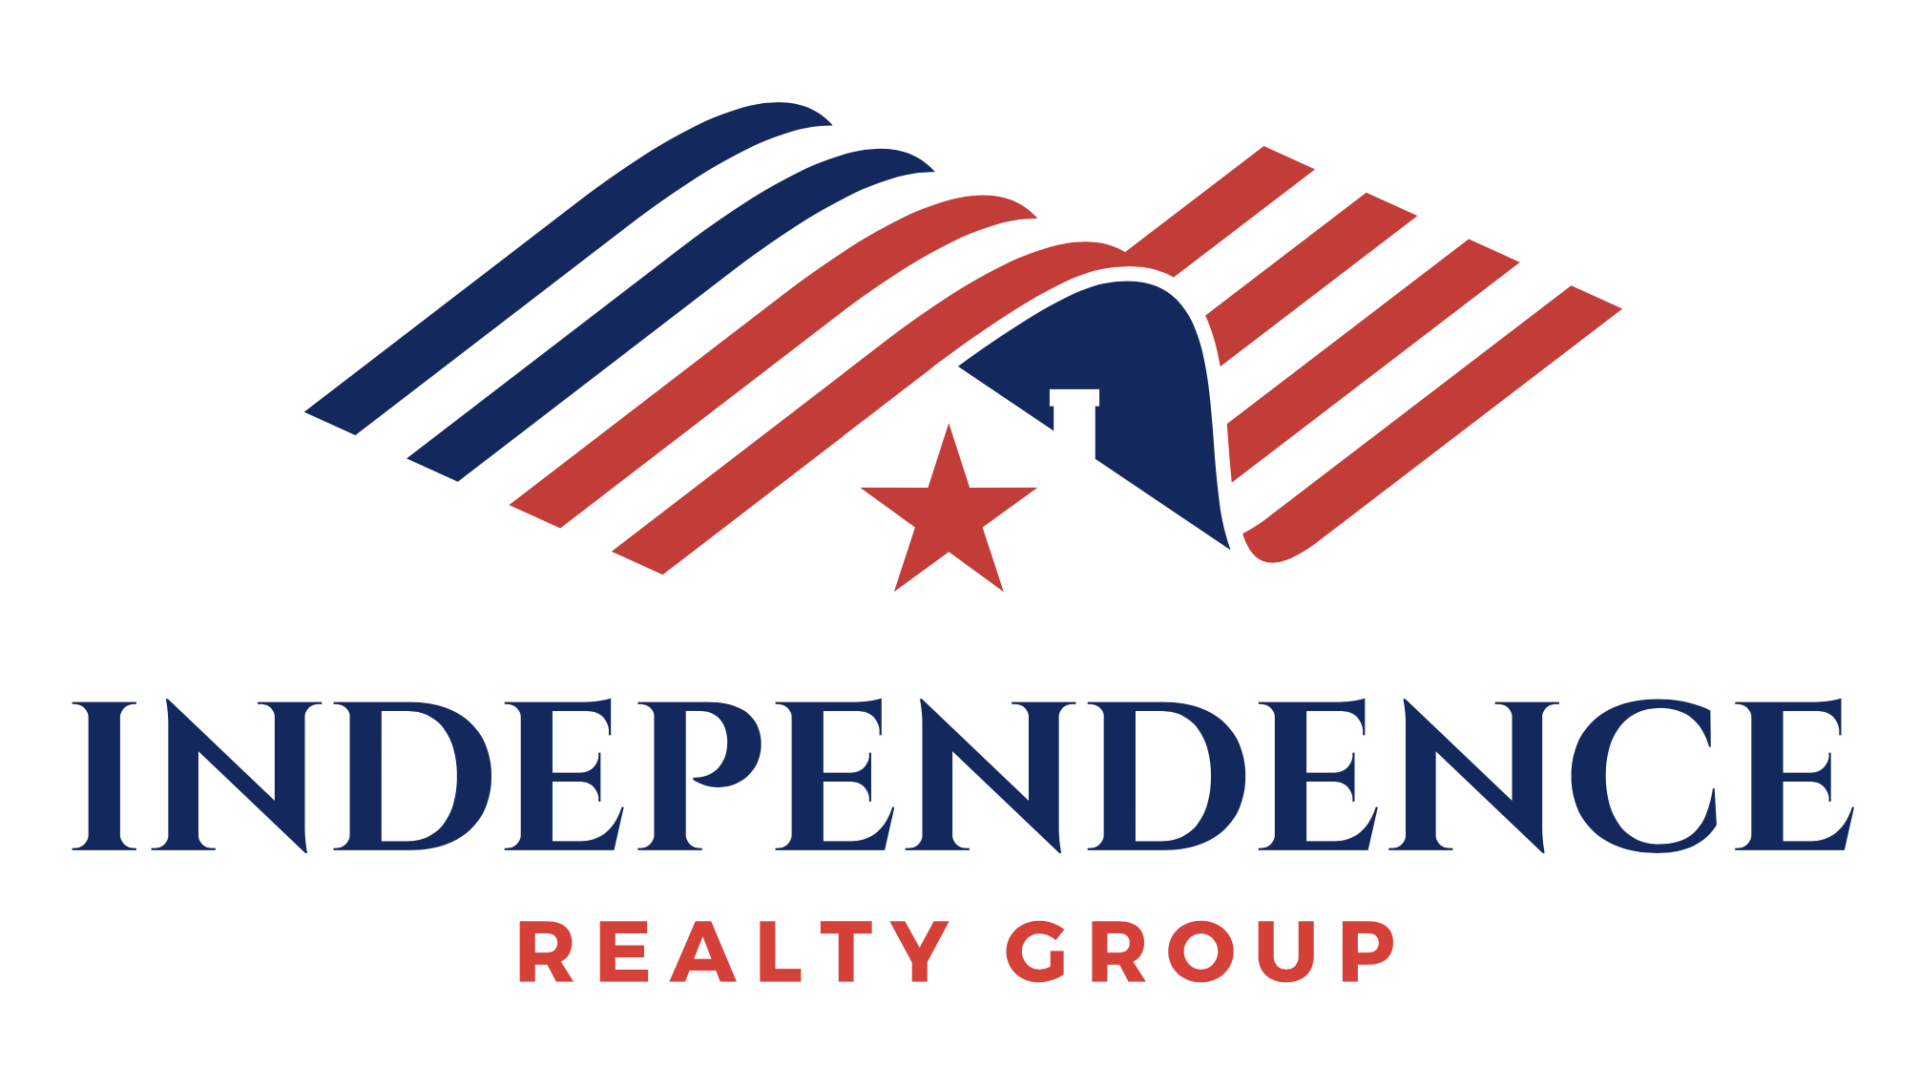 Independence Realty Group logo